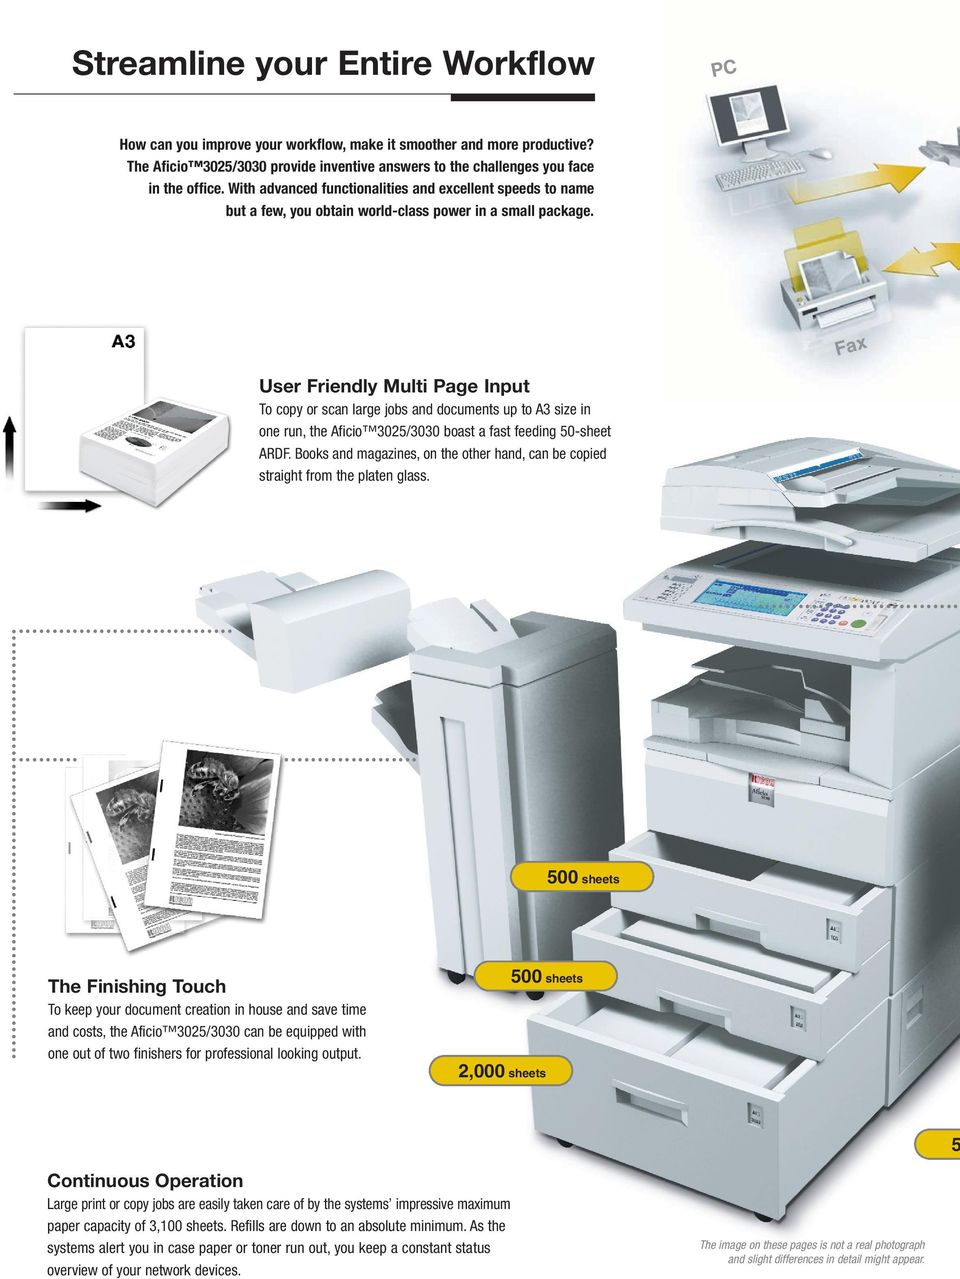 Fax User Friendly Multi Page Input To copy or scan large jobs and documents up to A3 size in one run, the Aficio 3025/3030 boast a fast feeding 50-sheet ARDF.